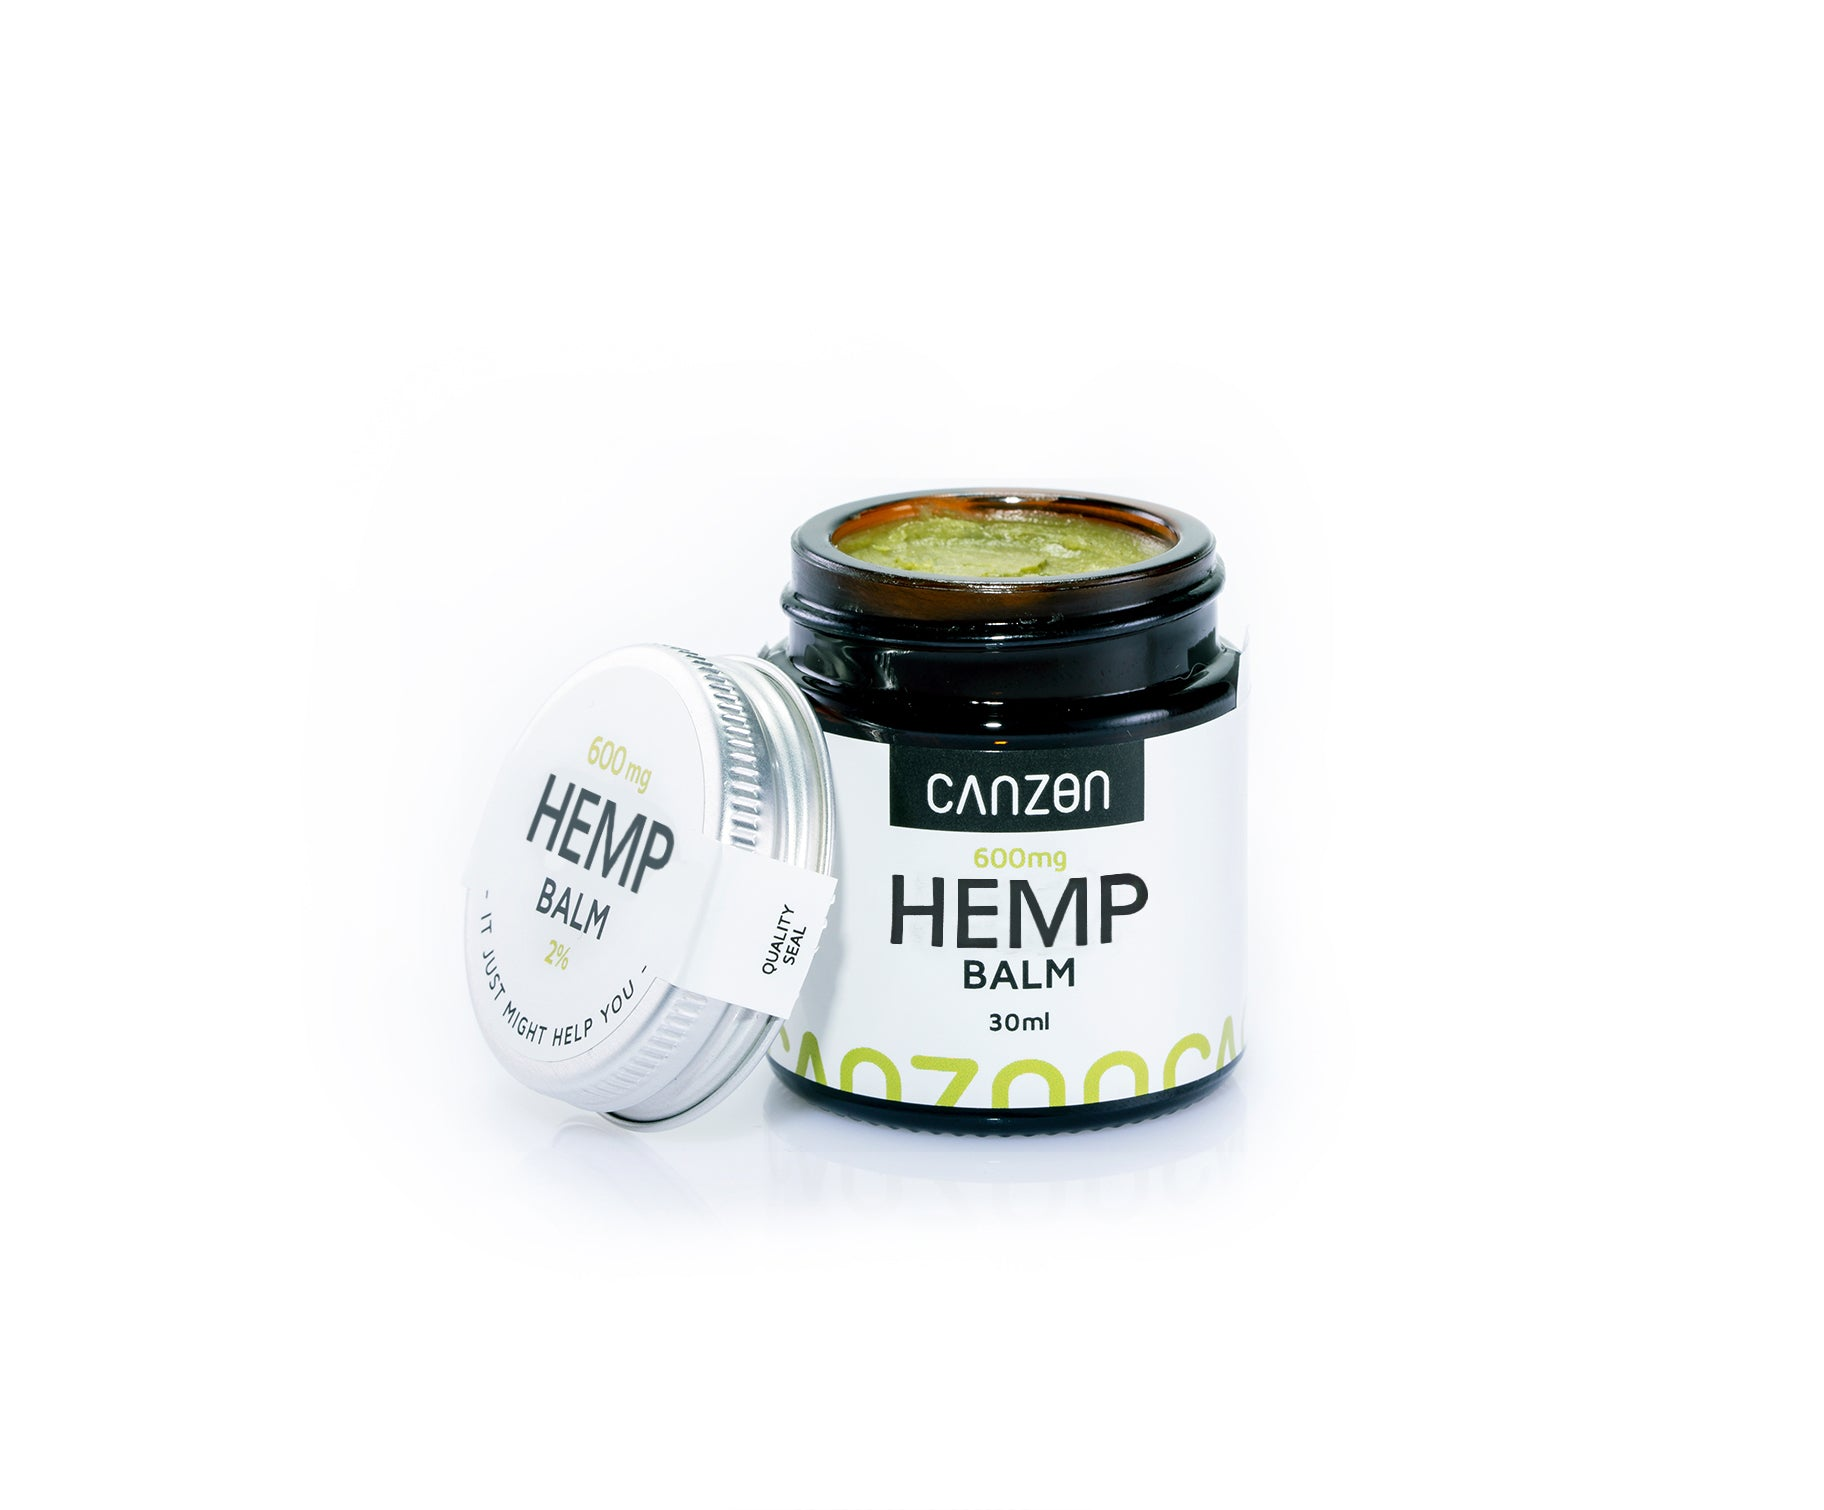 Hemp Balm 2% 30ml, 600mg Hemp Extract